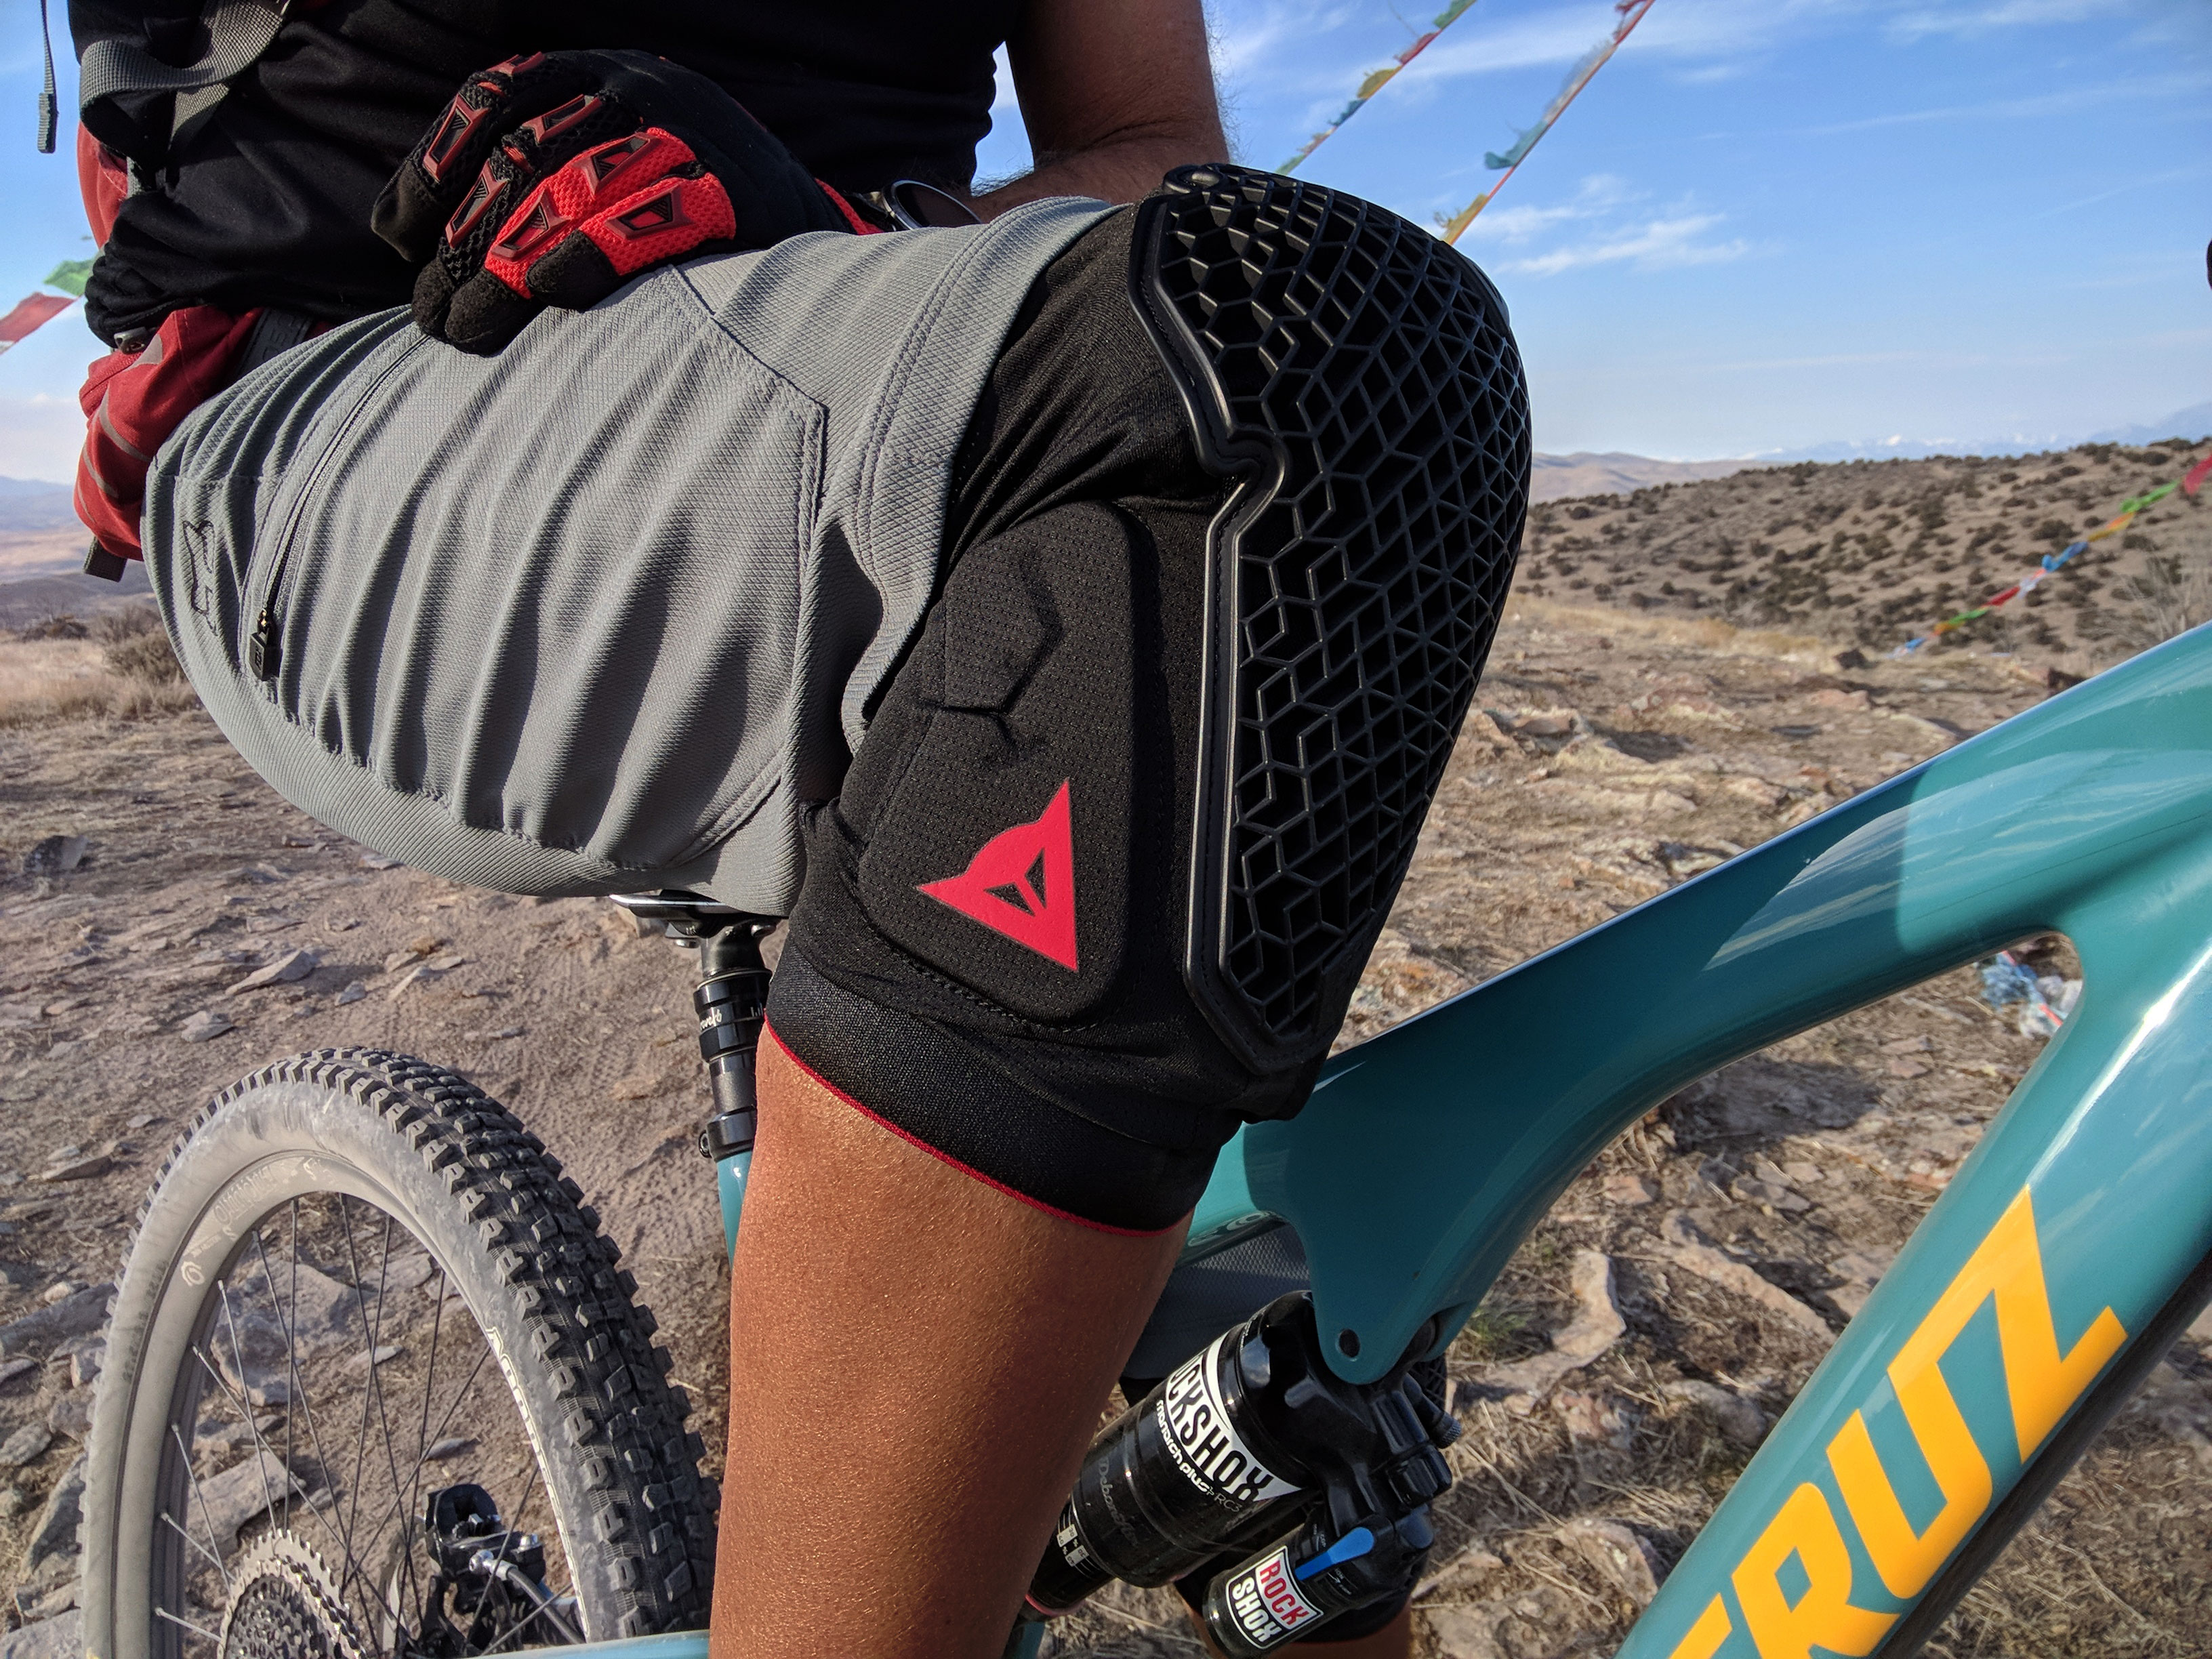 Dainese Trail Skins 2 Knee Armor | Review